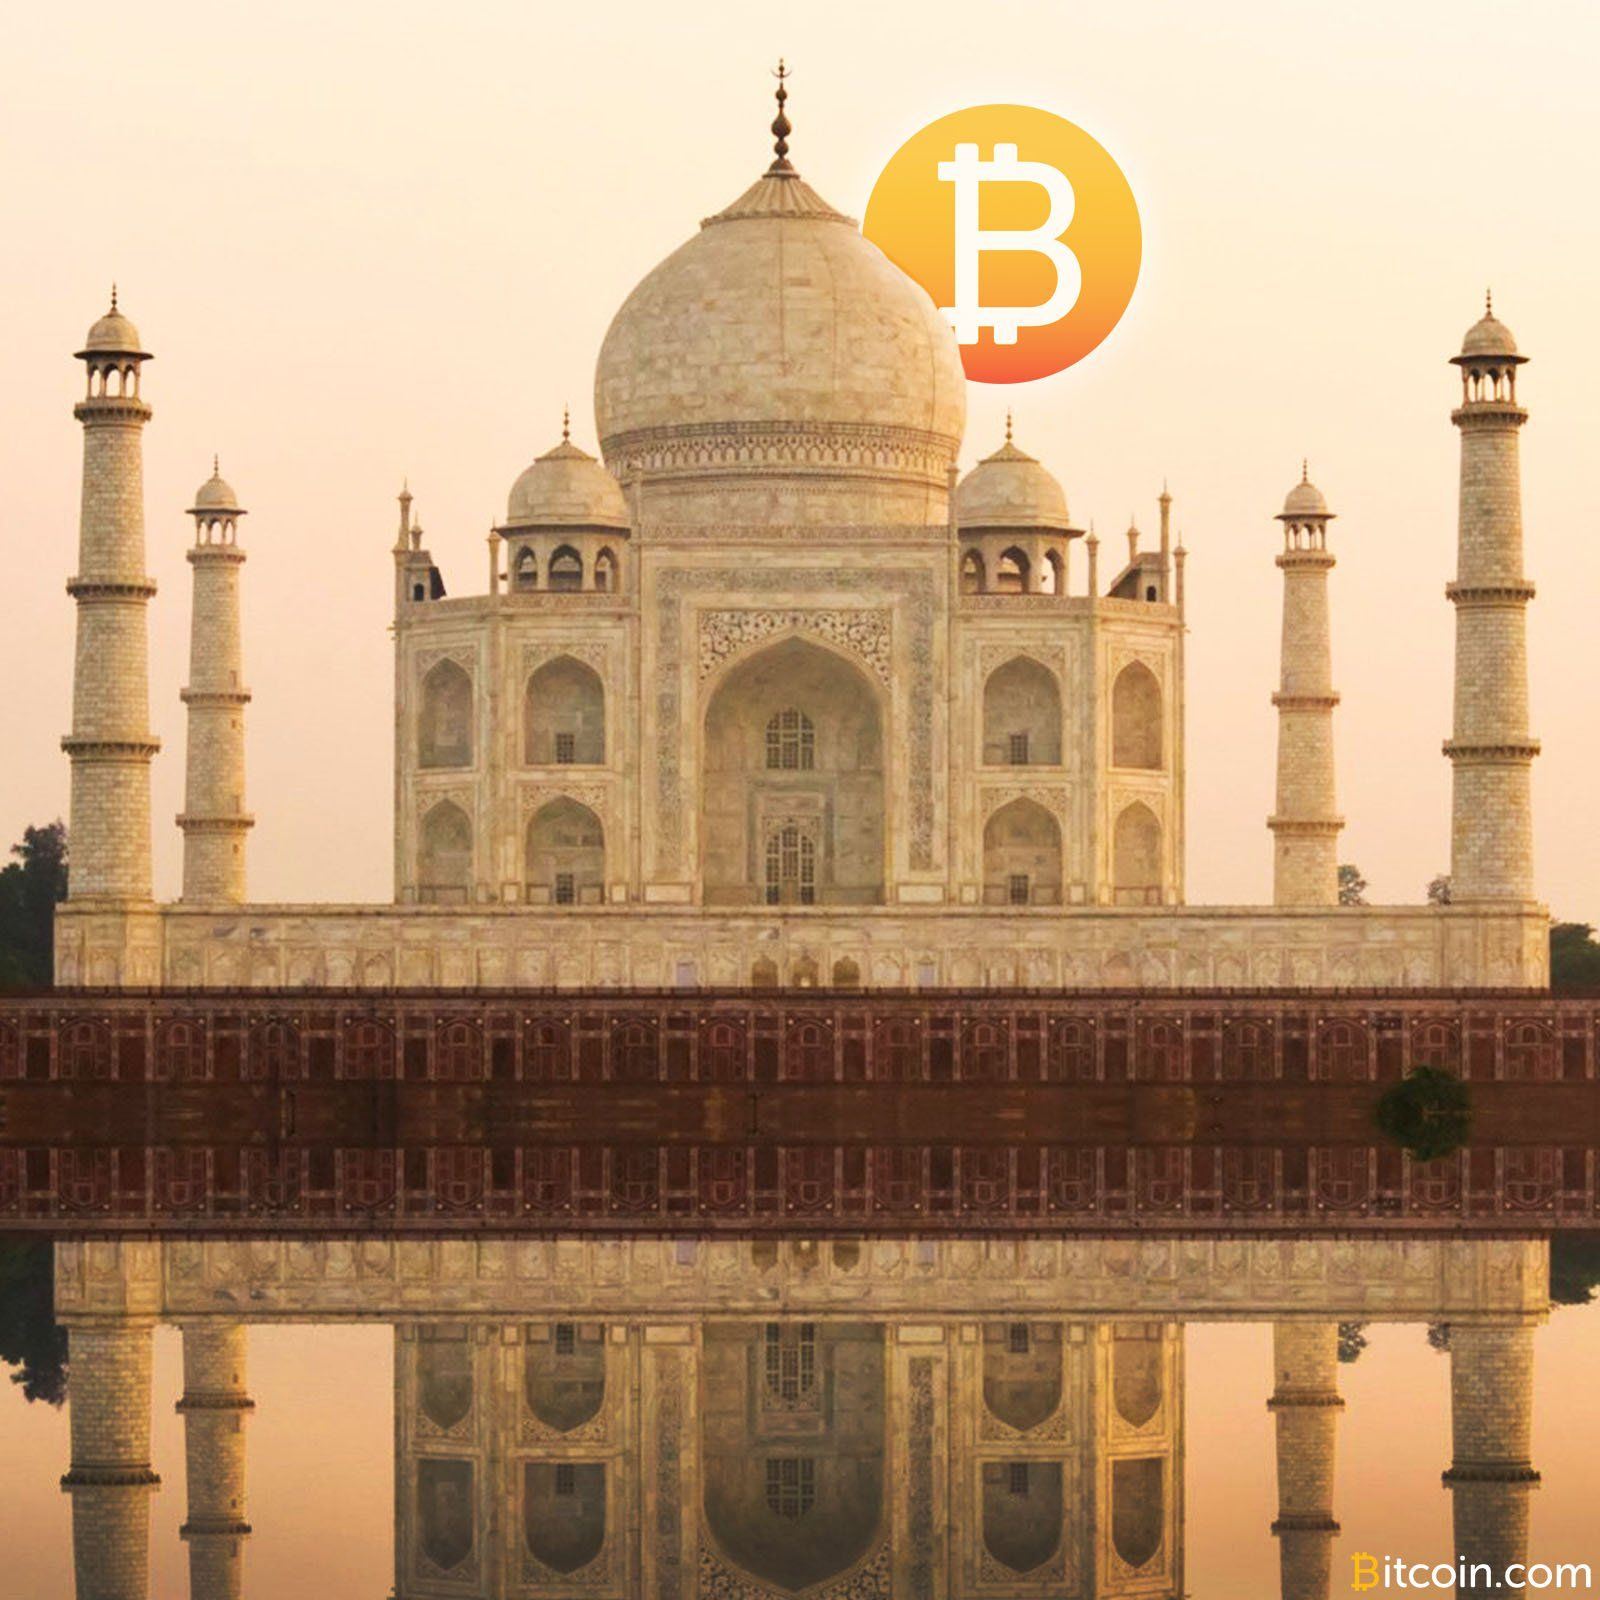 As indias government wars against cash bitcoin is sought